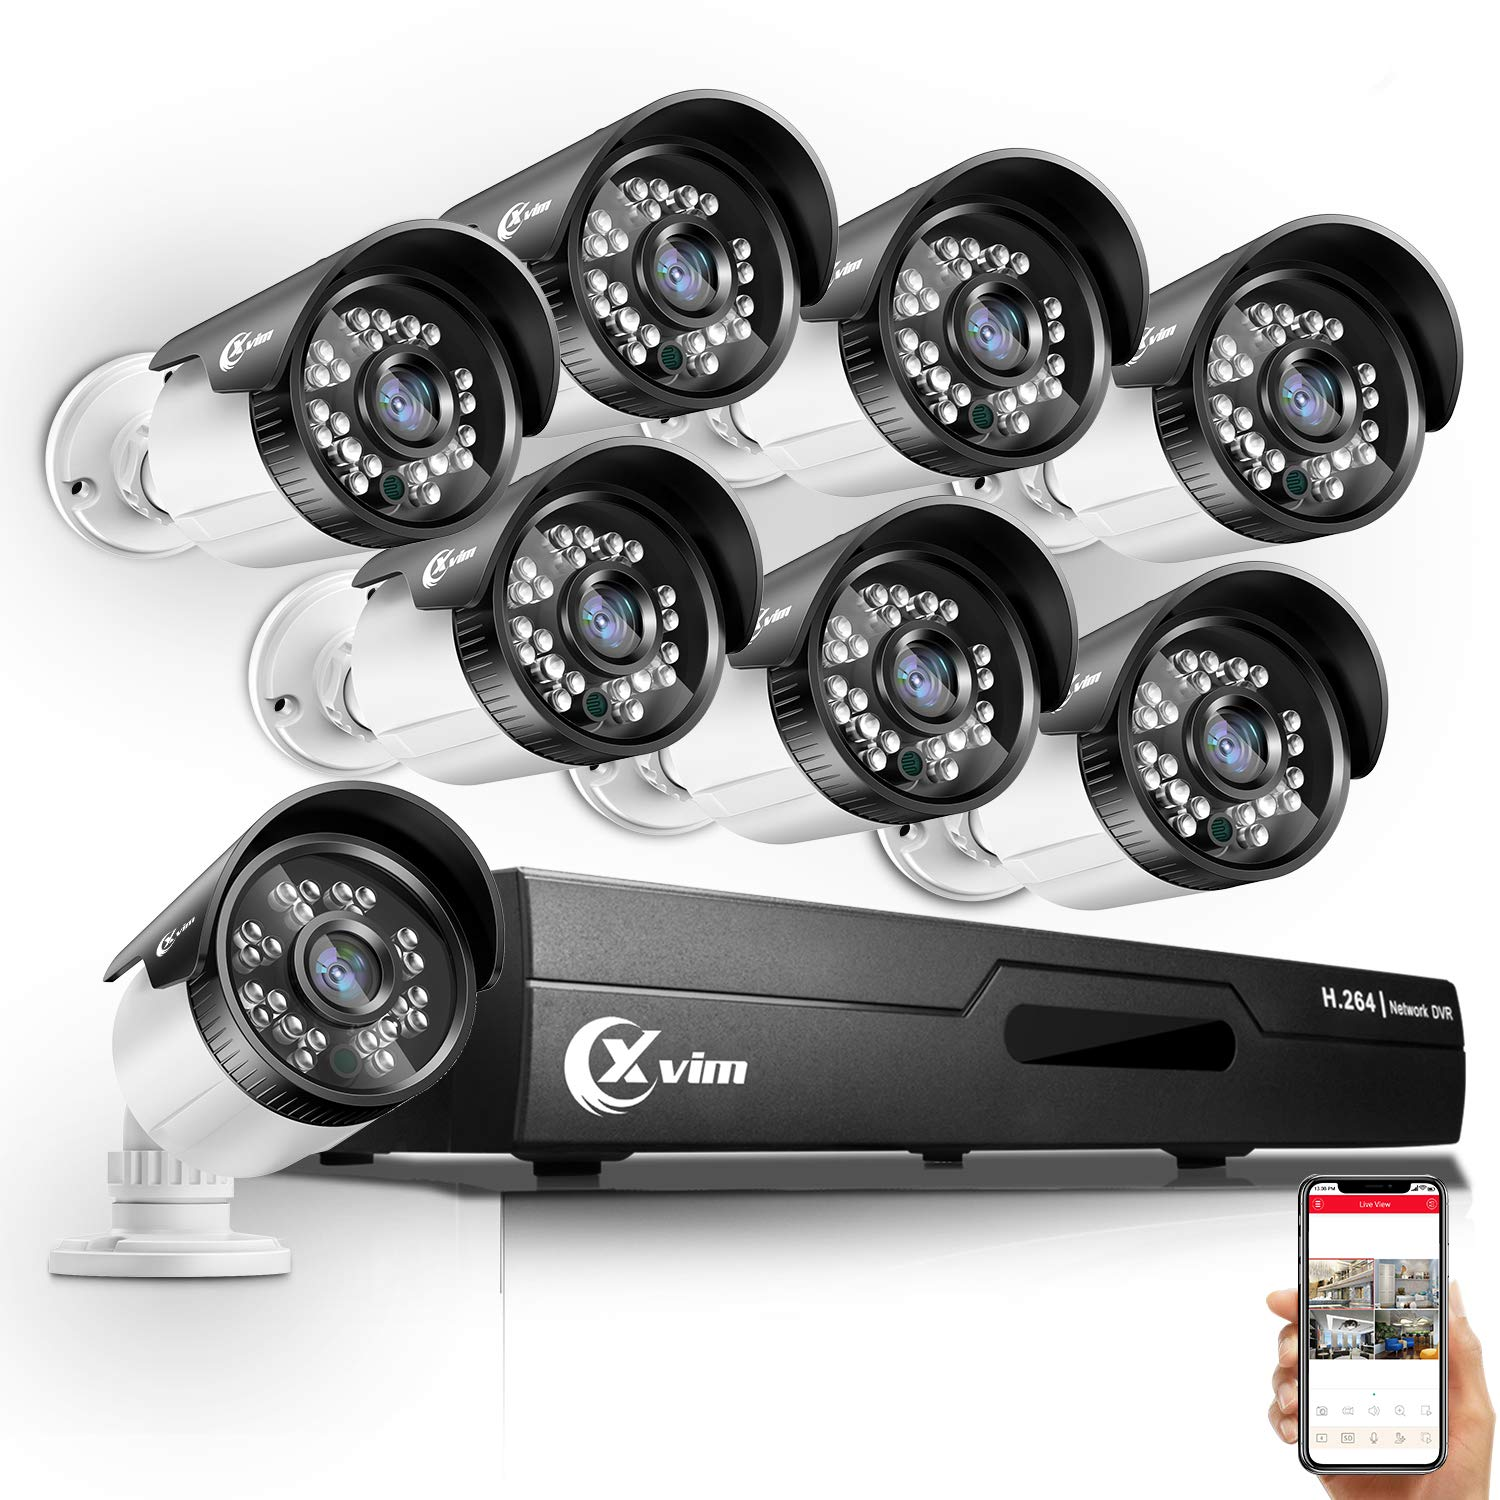 XVIM 8CH HD-TVI 720P Security Camera System,1080N HDMI CCTV DVR Recorder with 8pcs 1.0MP 720P 85ft Night Vision Outdoor Weatherproof Bullet Home Surveillance Cameras(No Hard Drive) by X-VIM